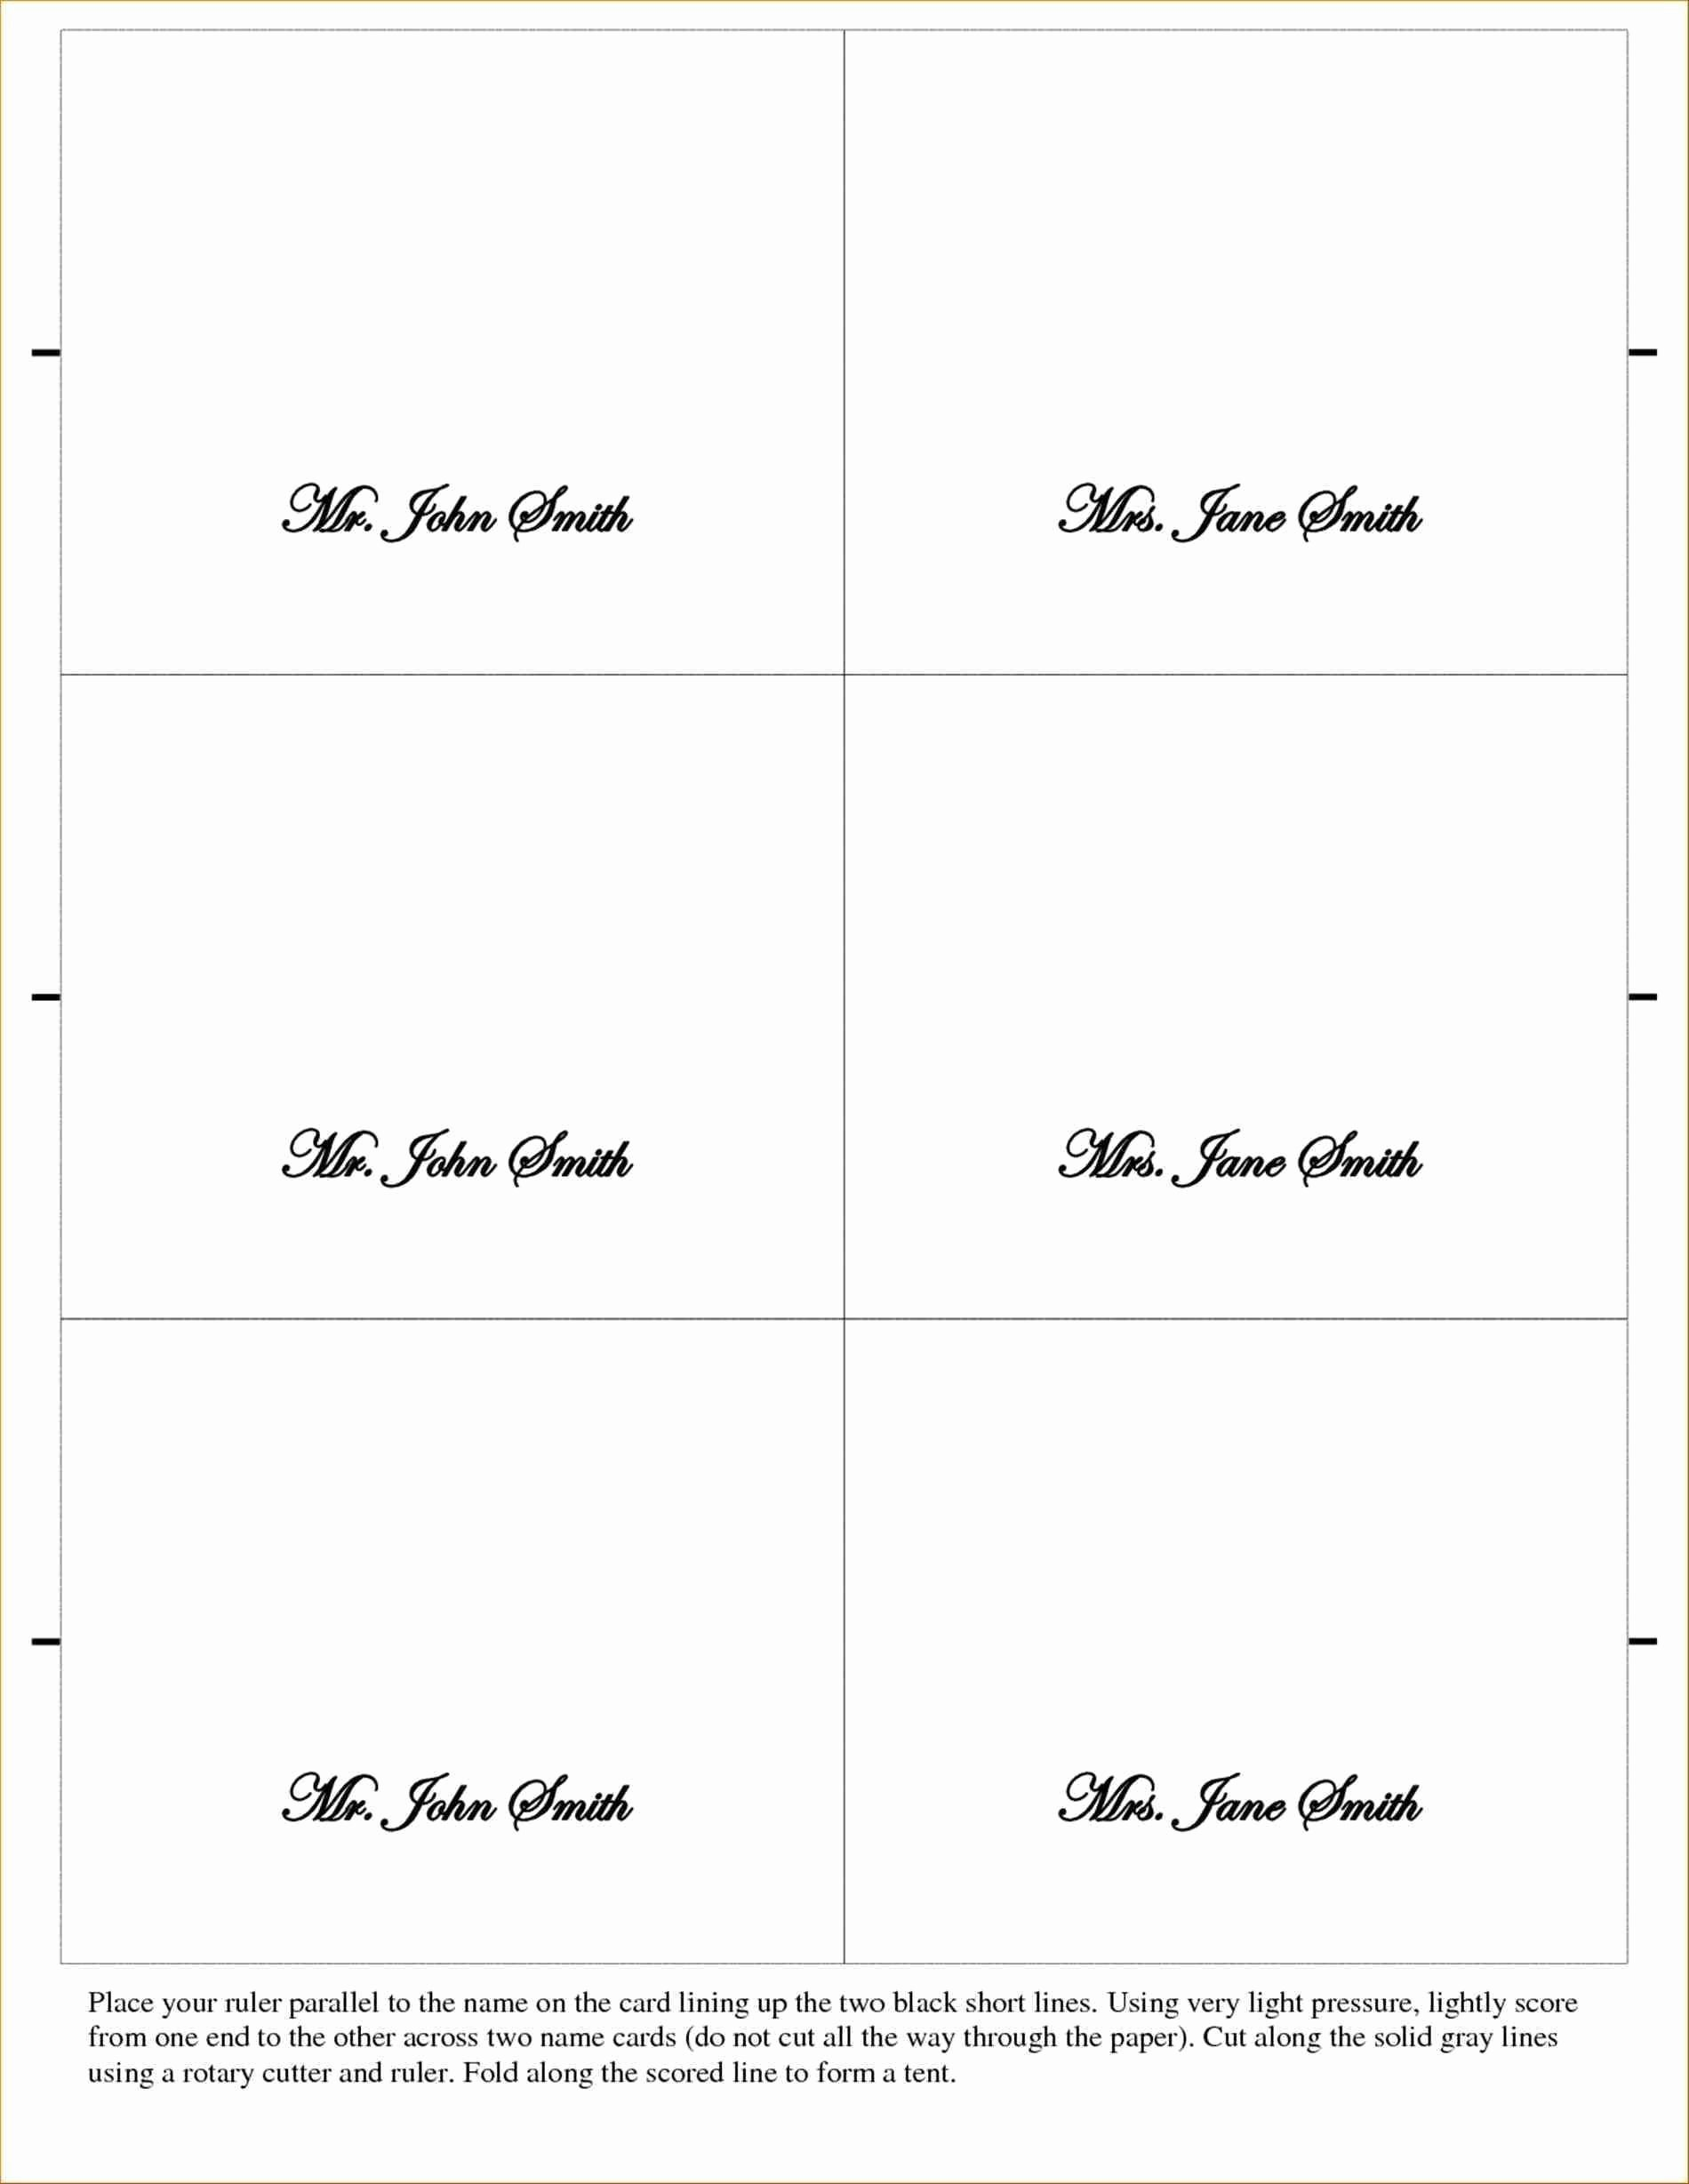 Place Card Size Template Inspirational Romantic Place Card Size From Try these Card Size Happy